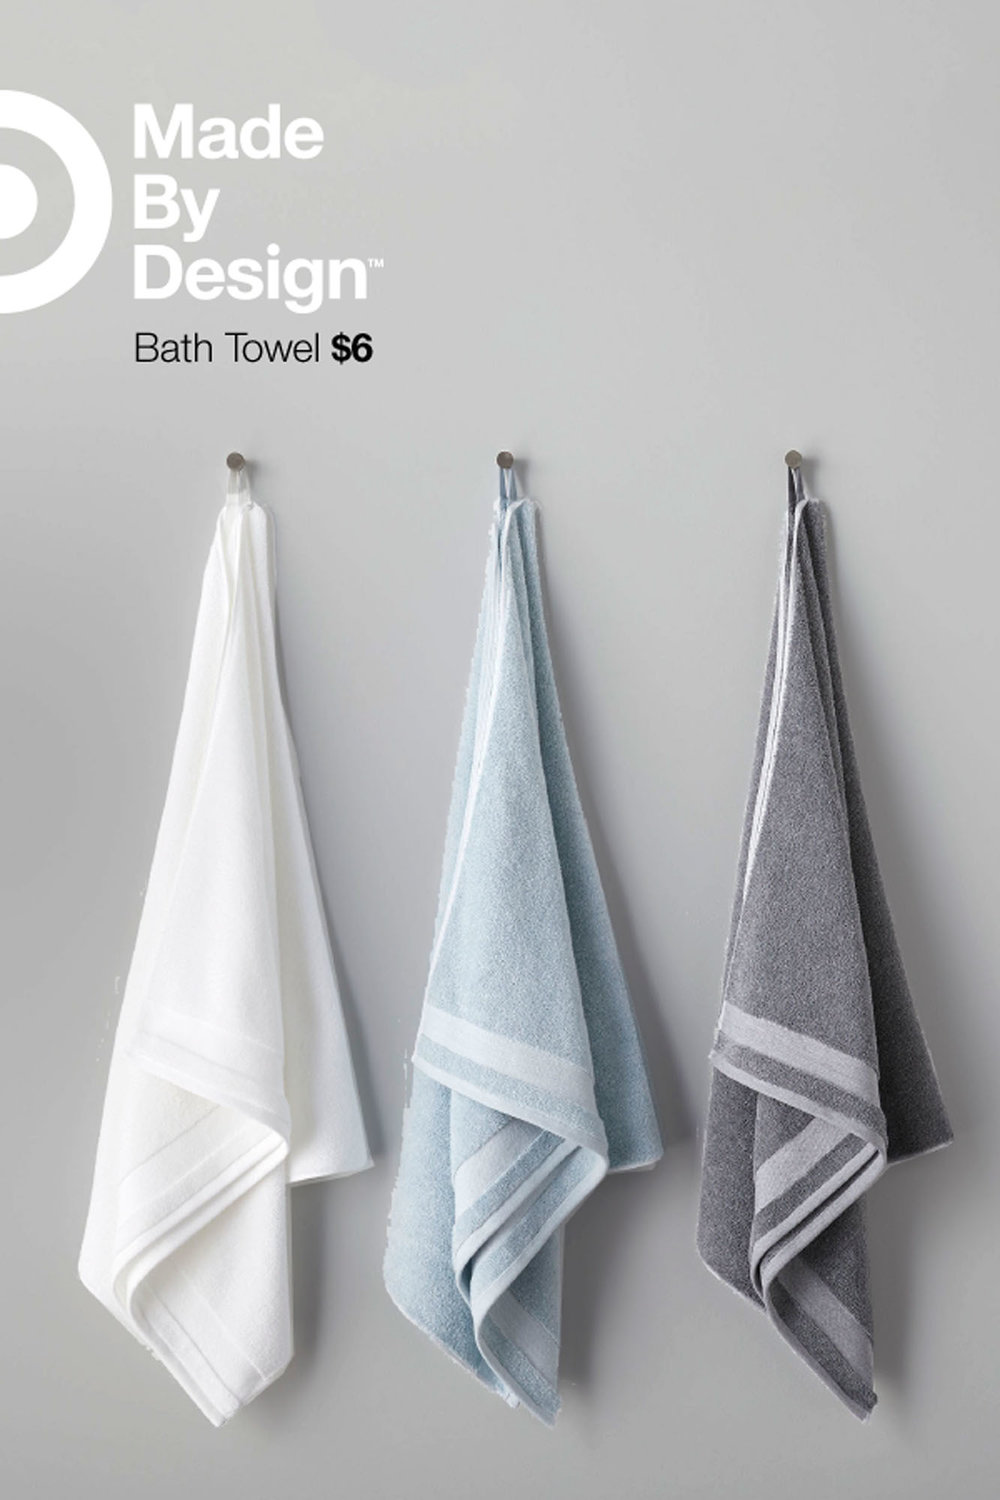 MBD_Pinterest_Towels_600x900_V3.jpg